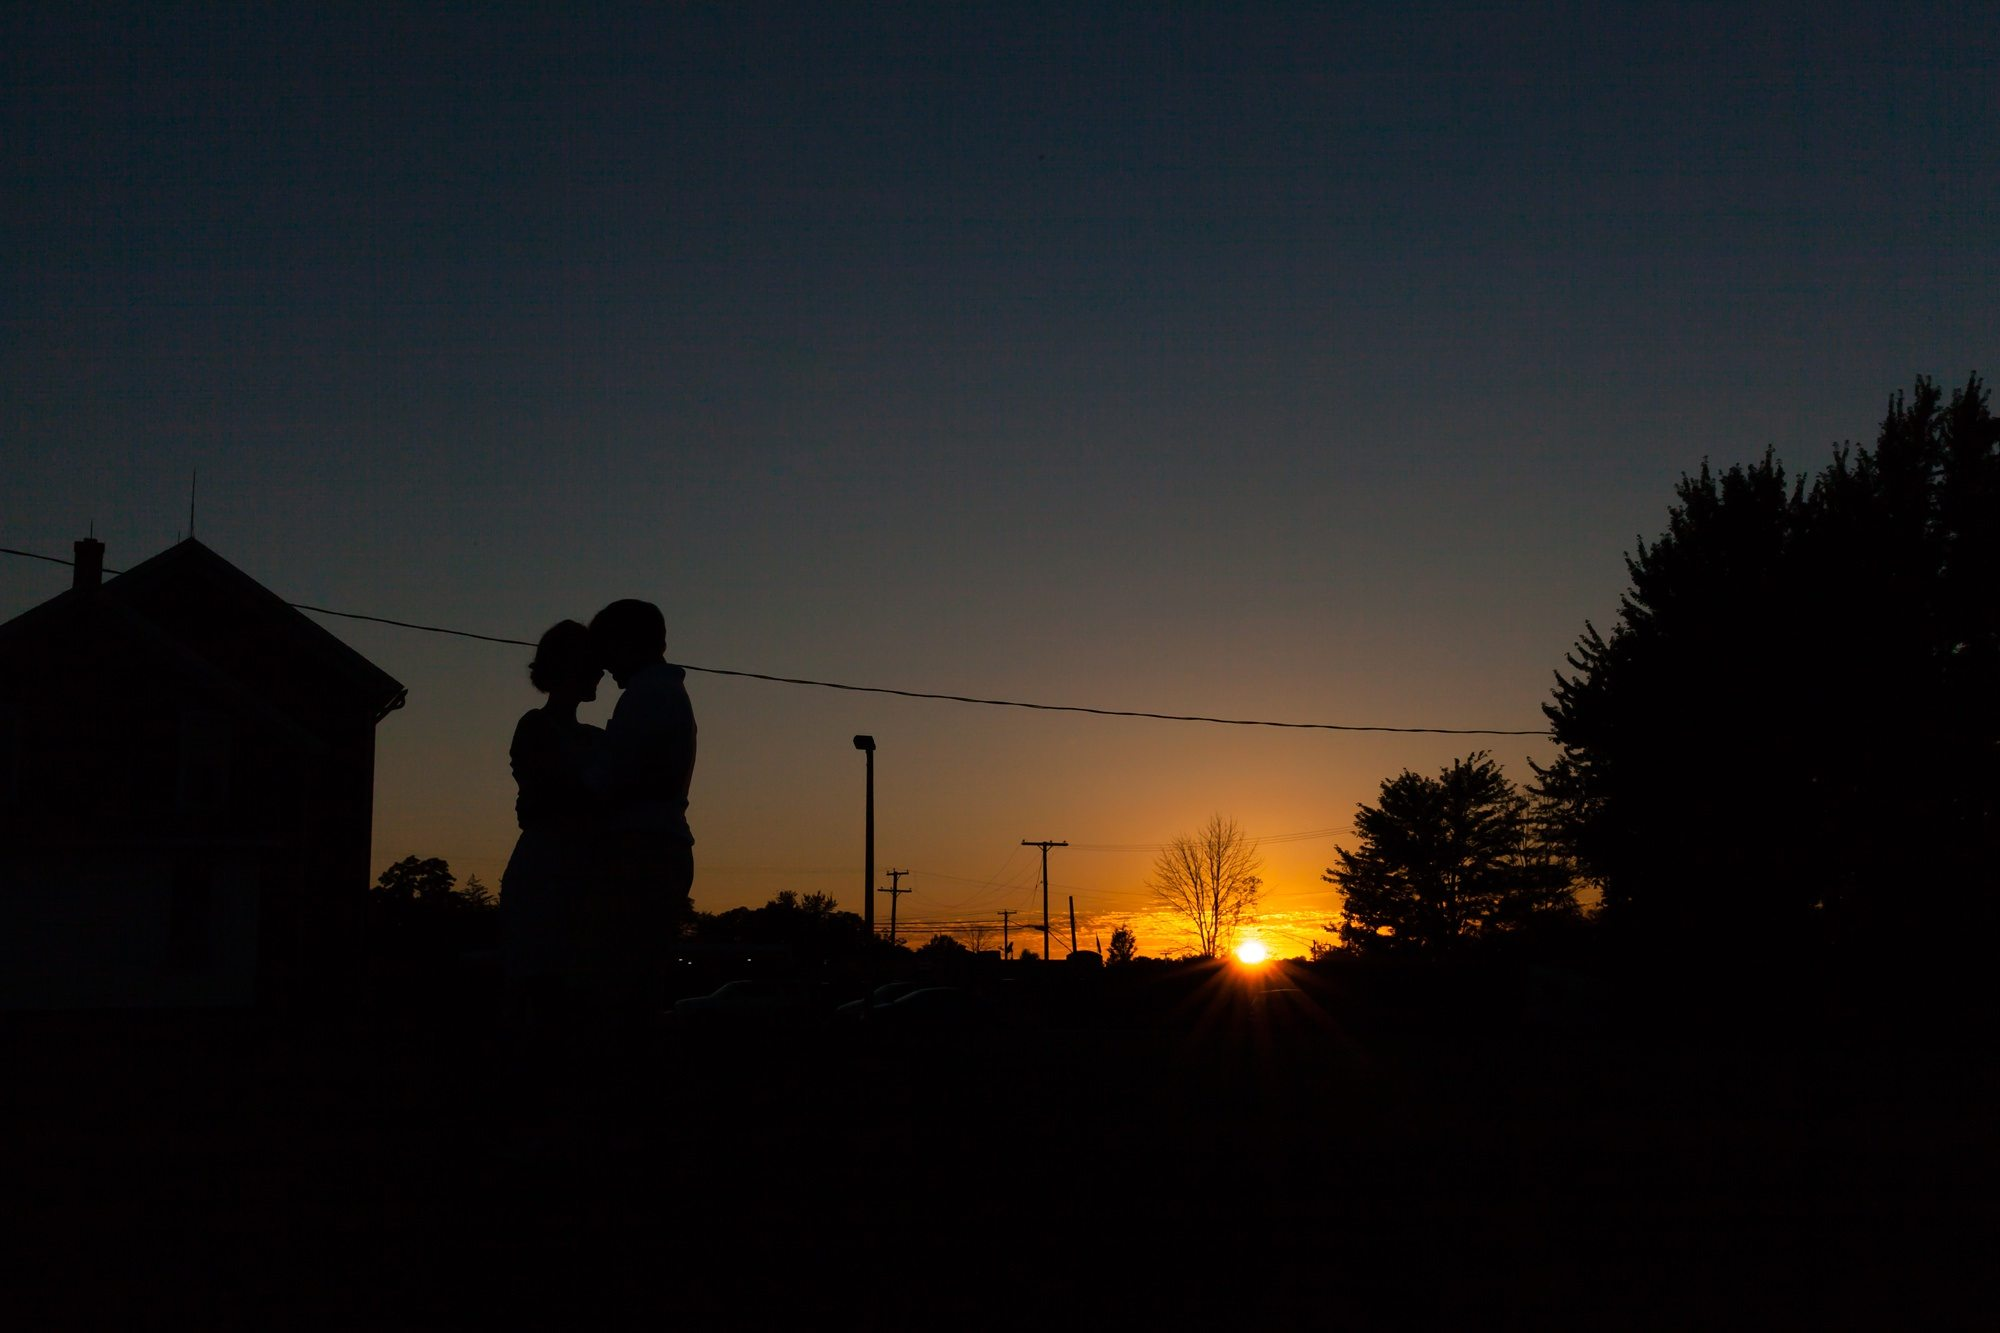 Silhouette in sunset at Desintaiton wedding in Fort Wayne Indiana